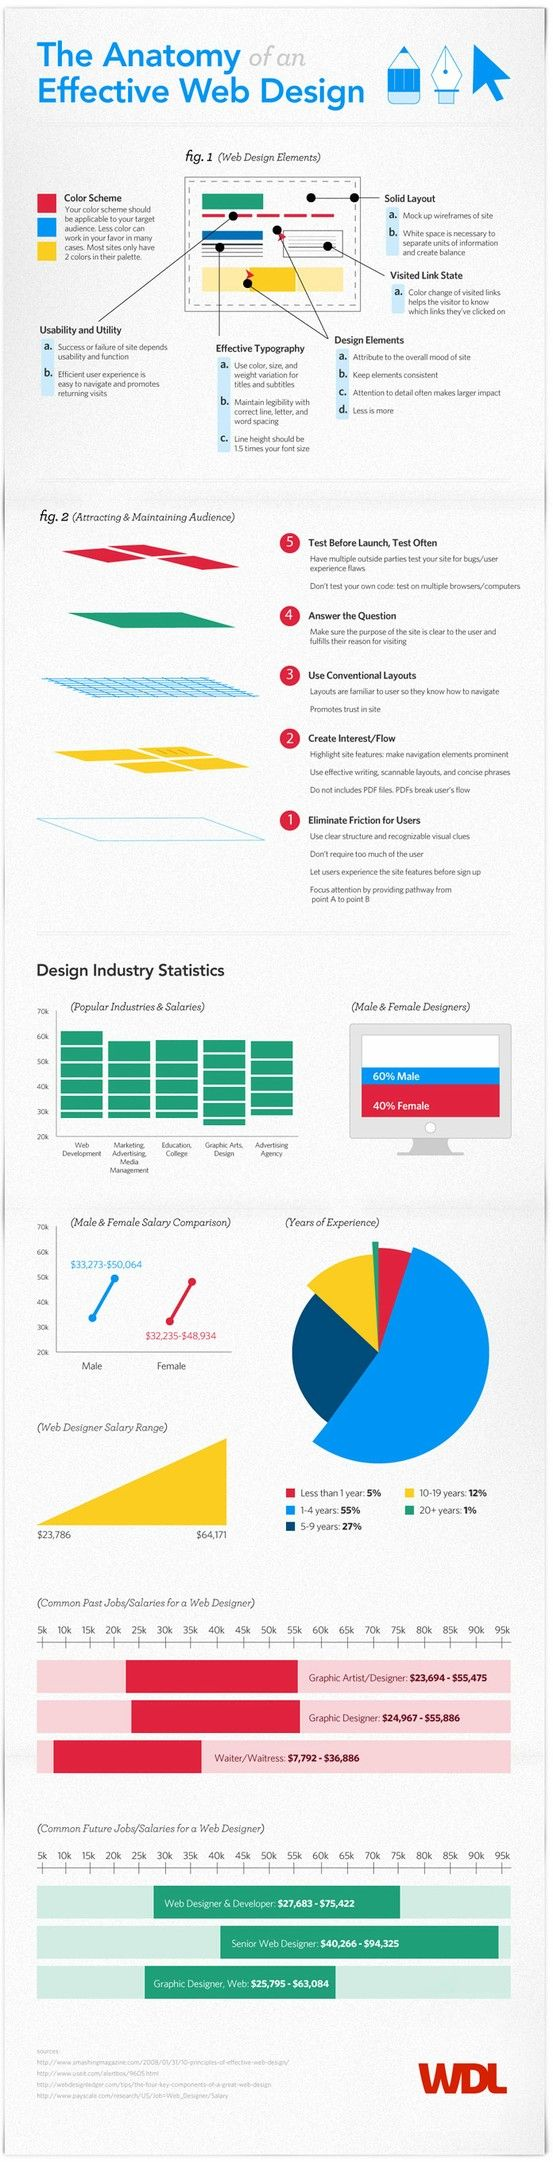 The Anatomy of an Effective Web Design | Infographics | Pinterest ...